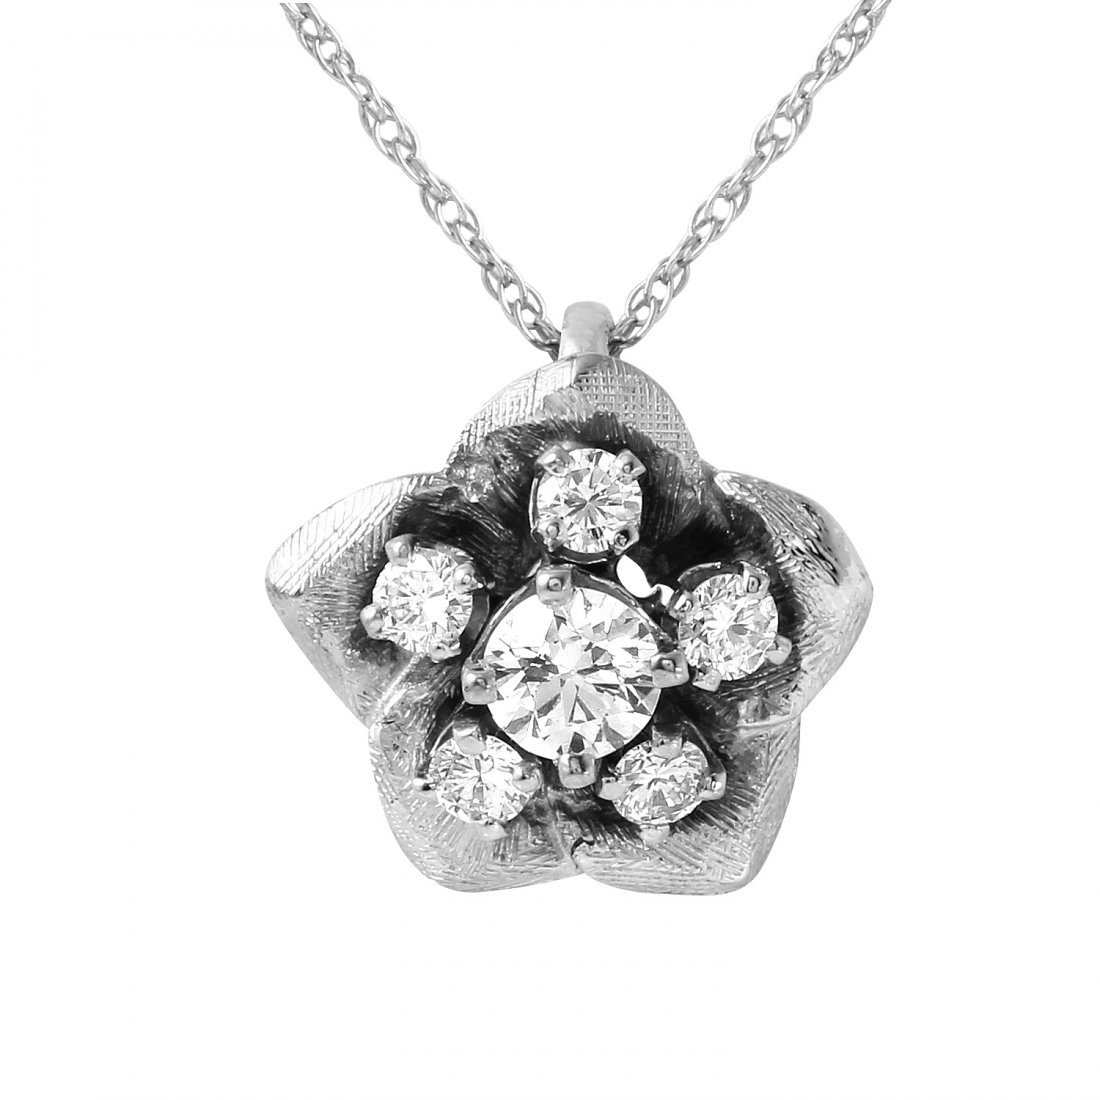 14KT White Gold Diamond Pendant & Chain